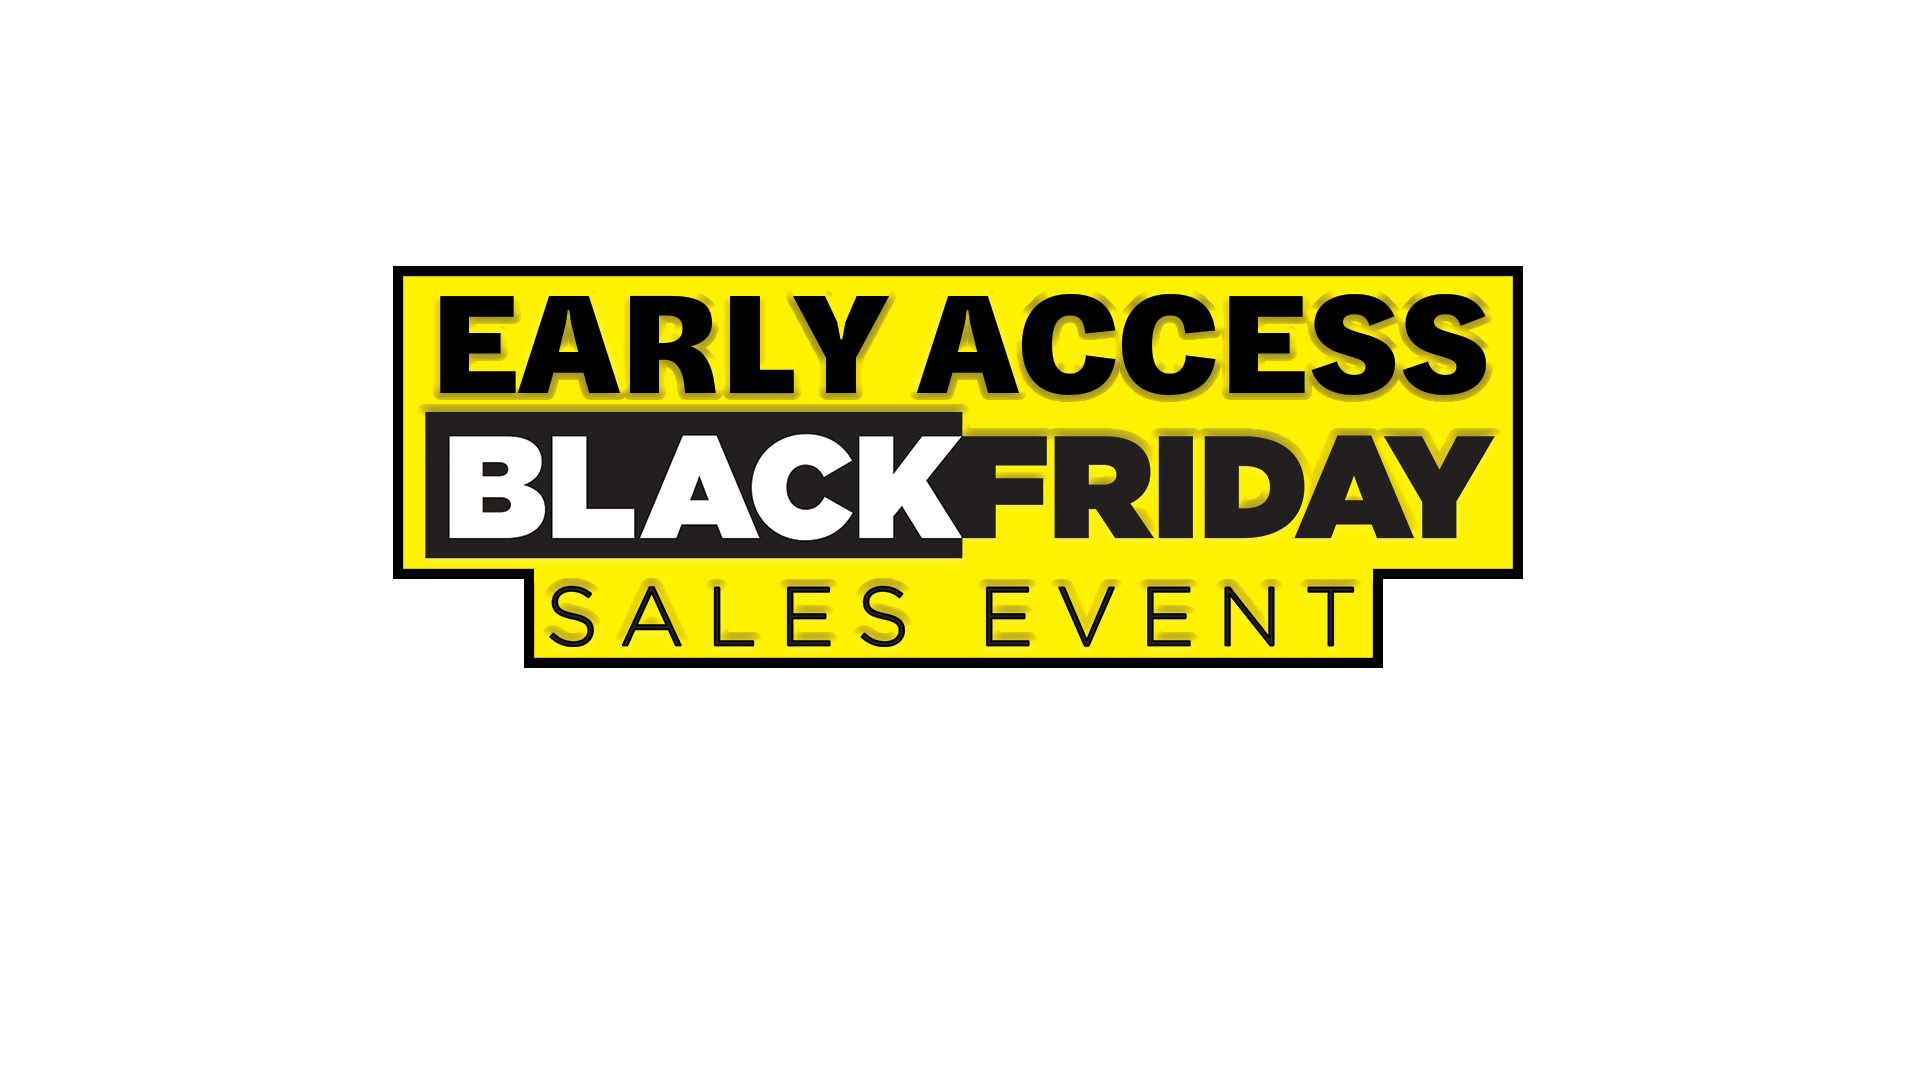 Early Access Black Friday Sales Event